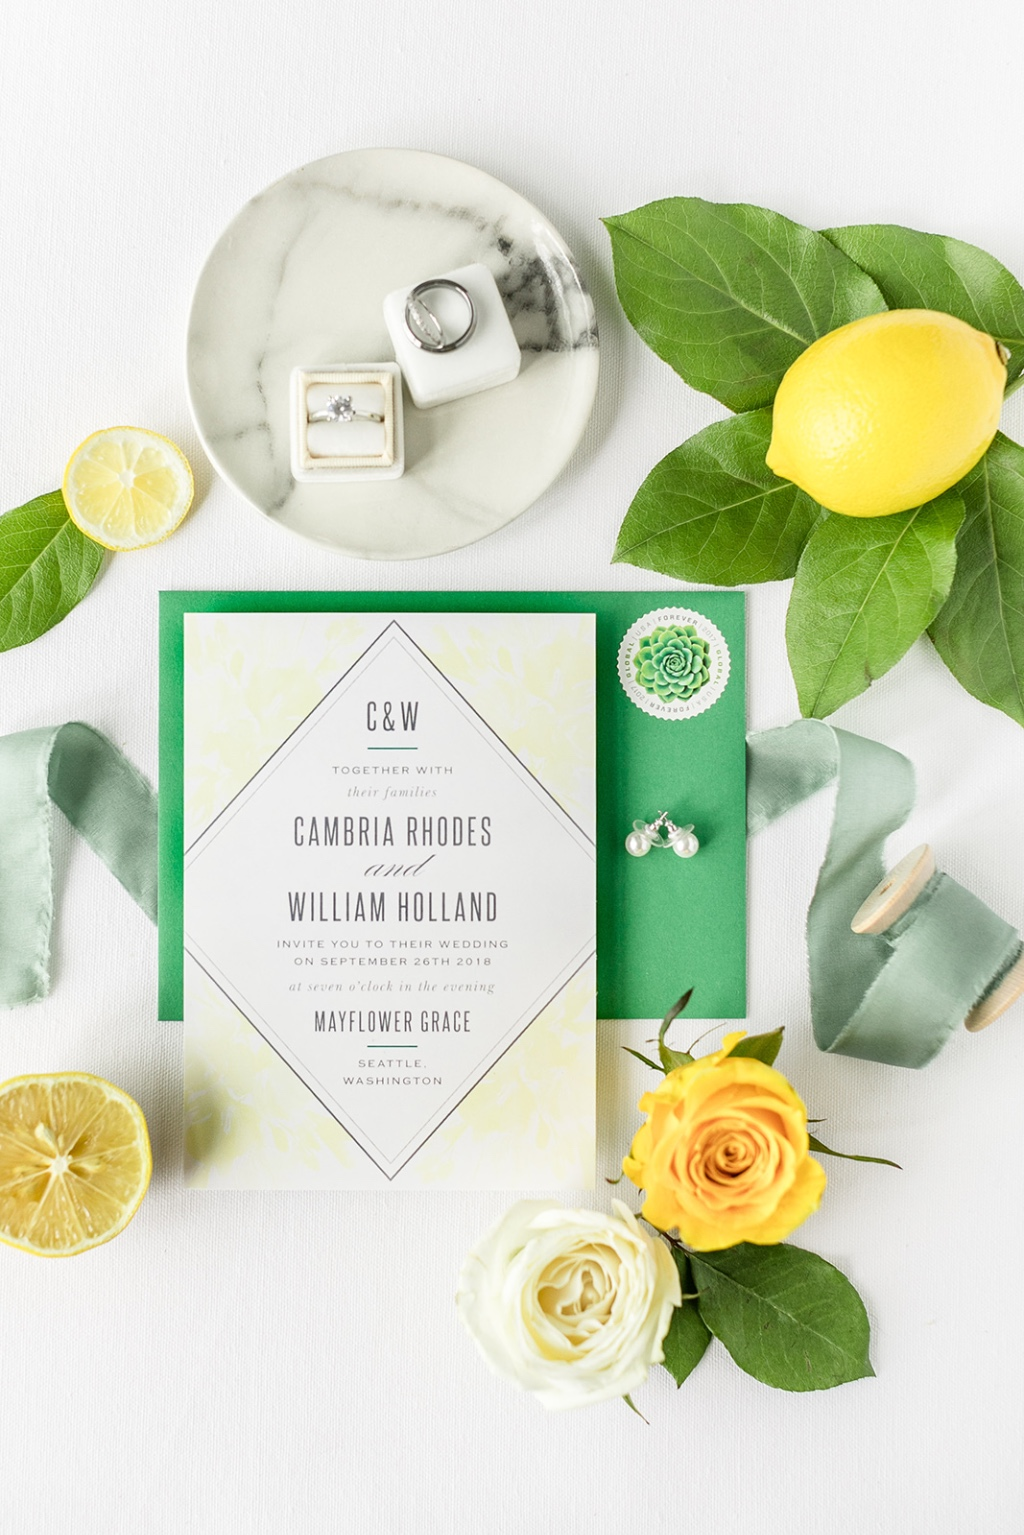 Brighten up your wedding plans with a fun and funky color scheme. This lemon and lime duo is on point!